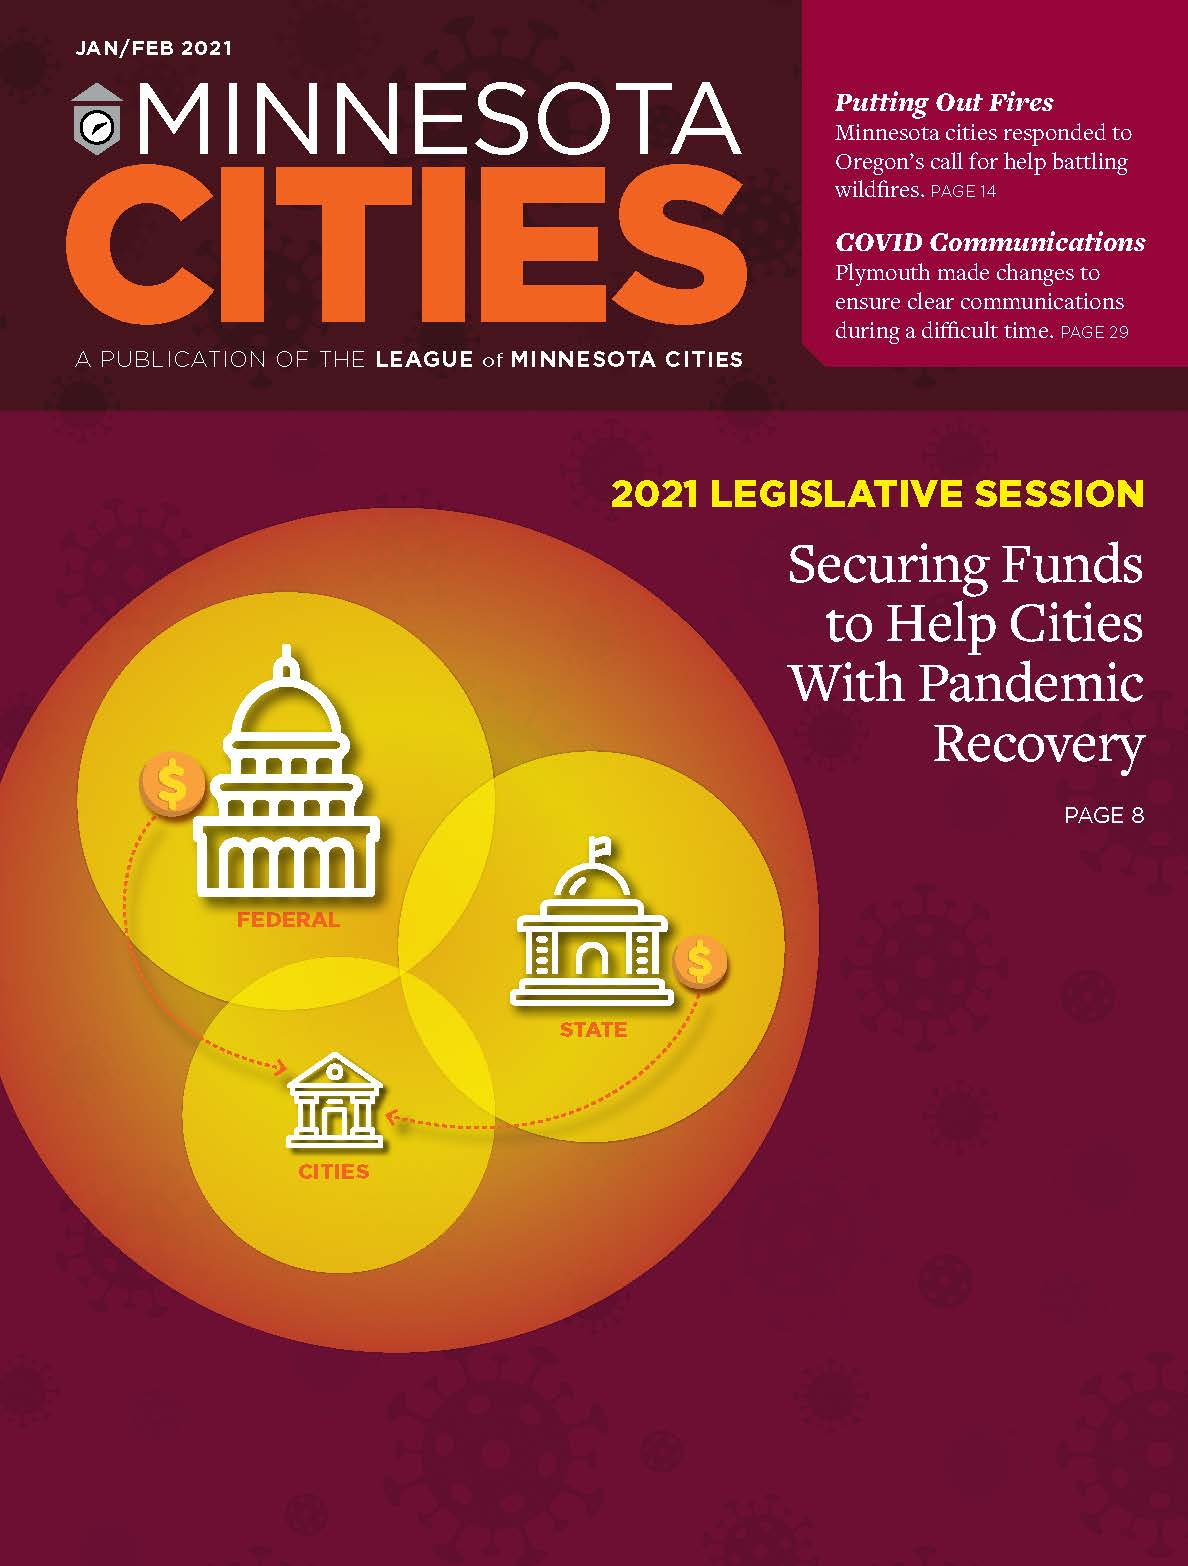 Cover of Jan-Feb 2021 magazine: Securing Funds to Help Cities With Pandemic Recovery.